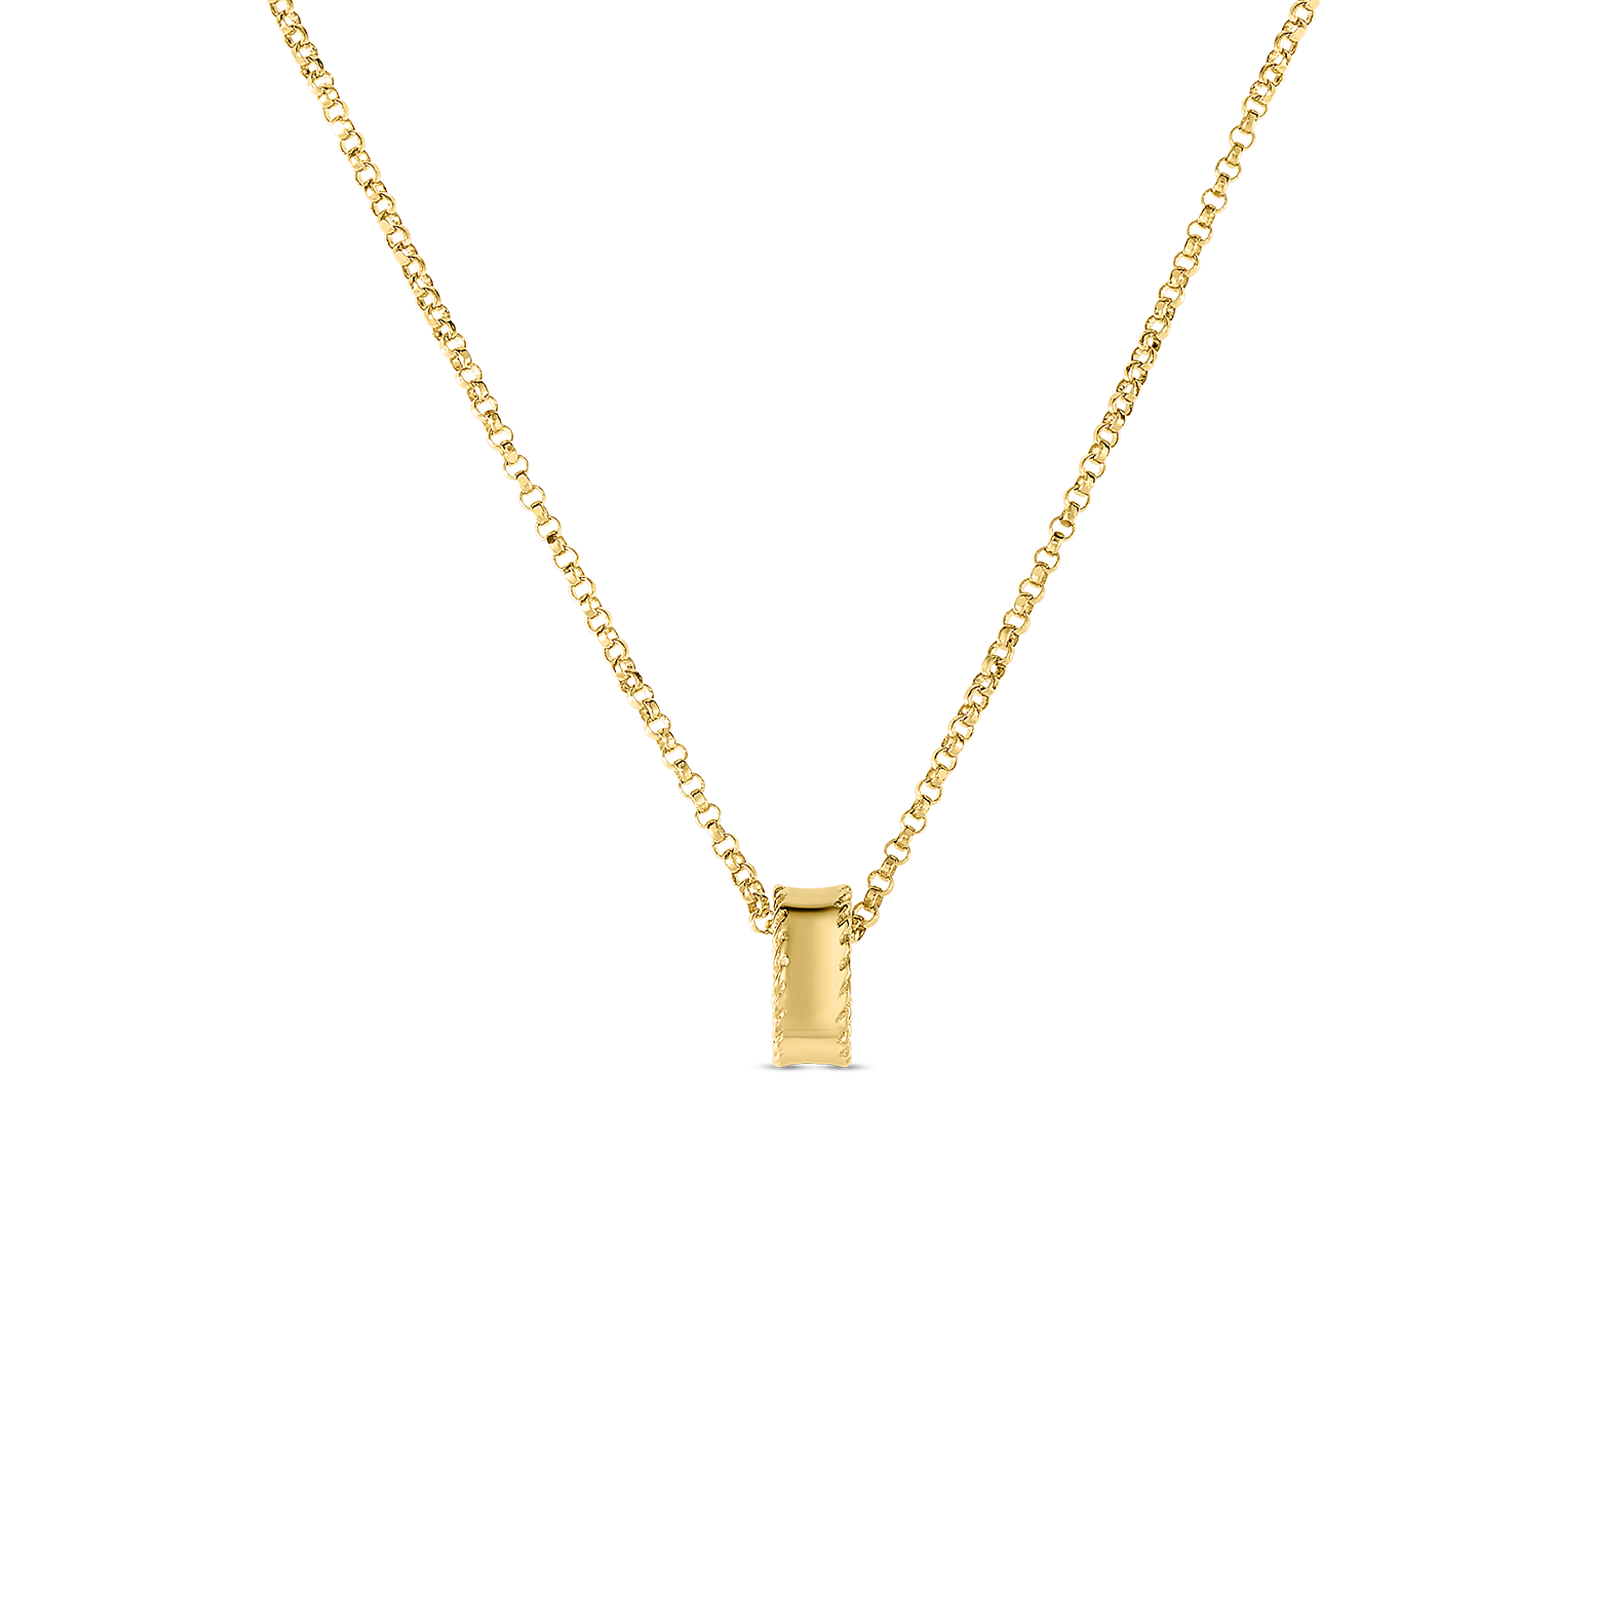 18K Yellow Gold Princess Rondel Pendant